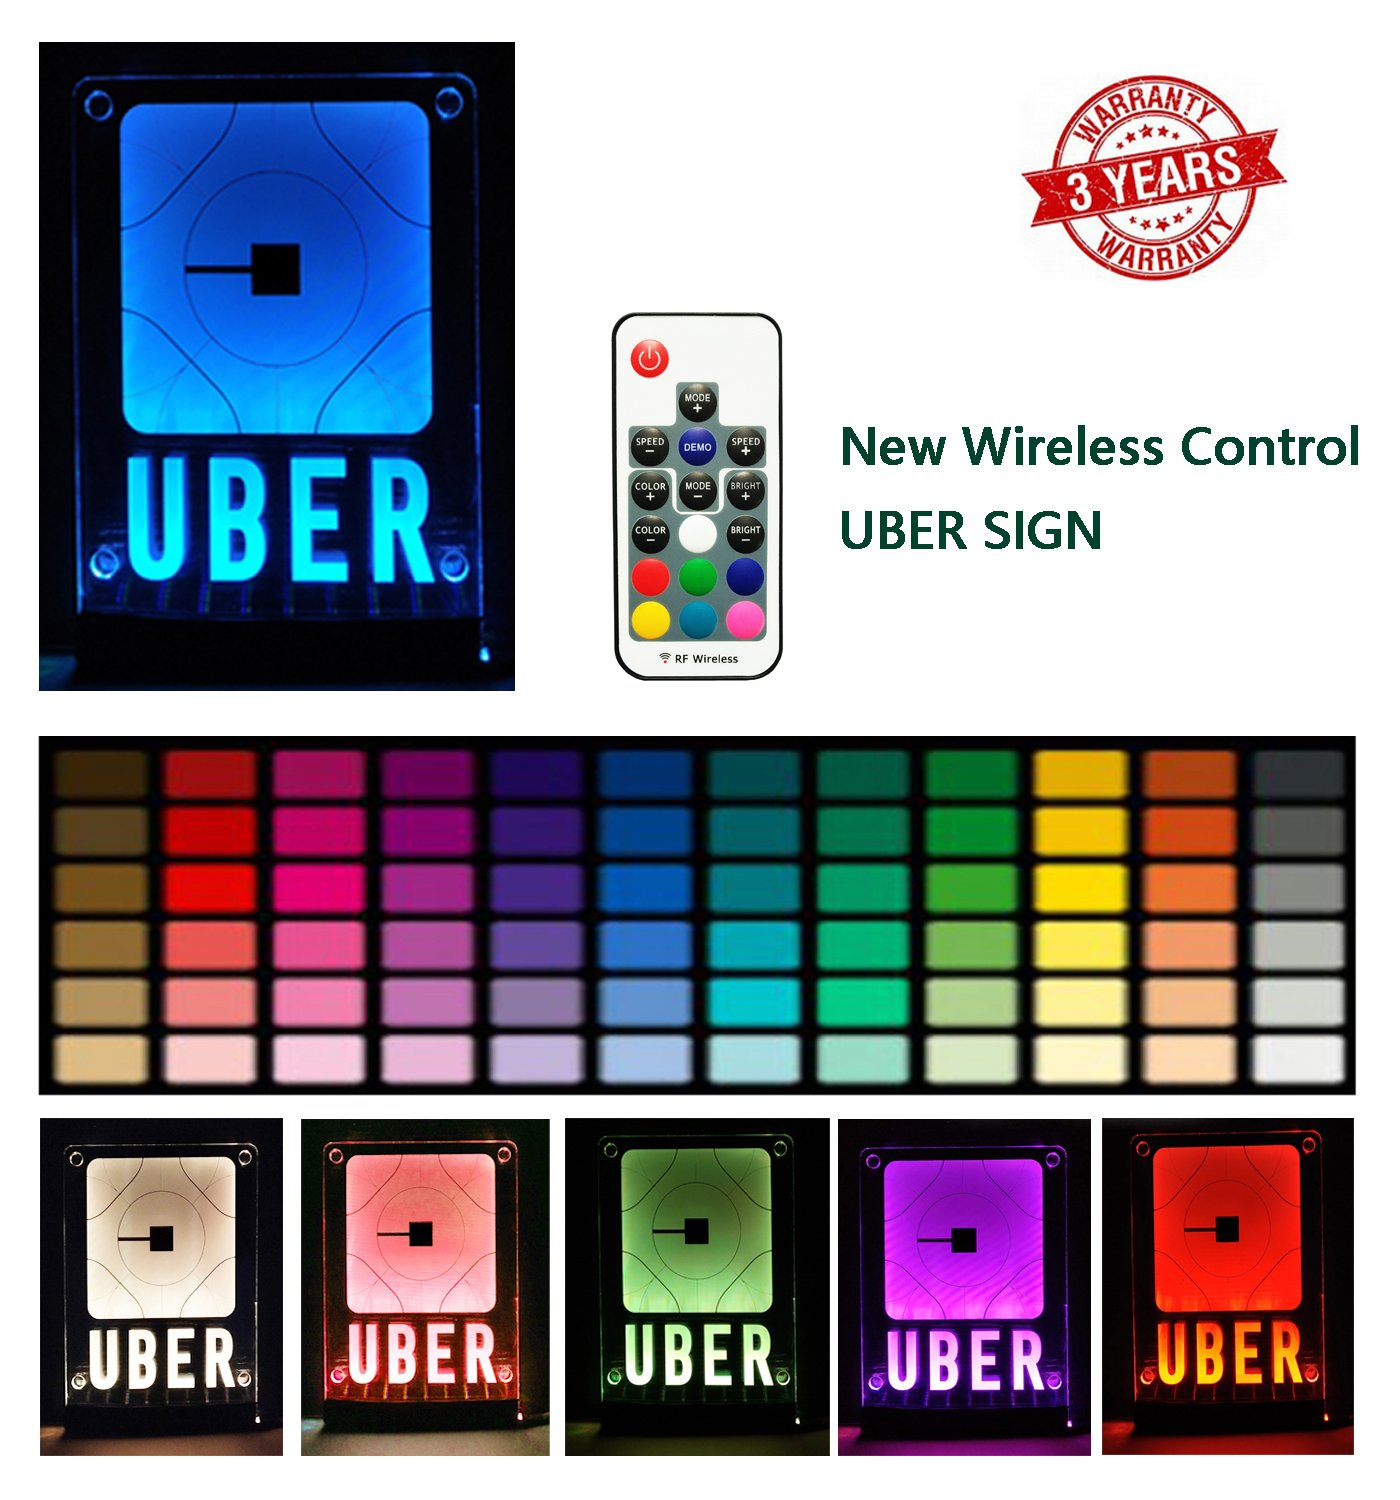 ZPO Uber Sign, LED Logo Light,Decal Glow Accessories, Wireless Control,Remote Intelligent Control 16 Glowing Colors 4 Control Modes, Uber Lyft Sign Light Up Sticker For Car,30M Wide signal coverage